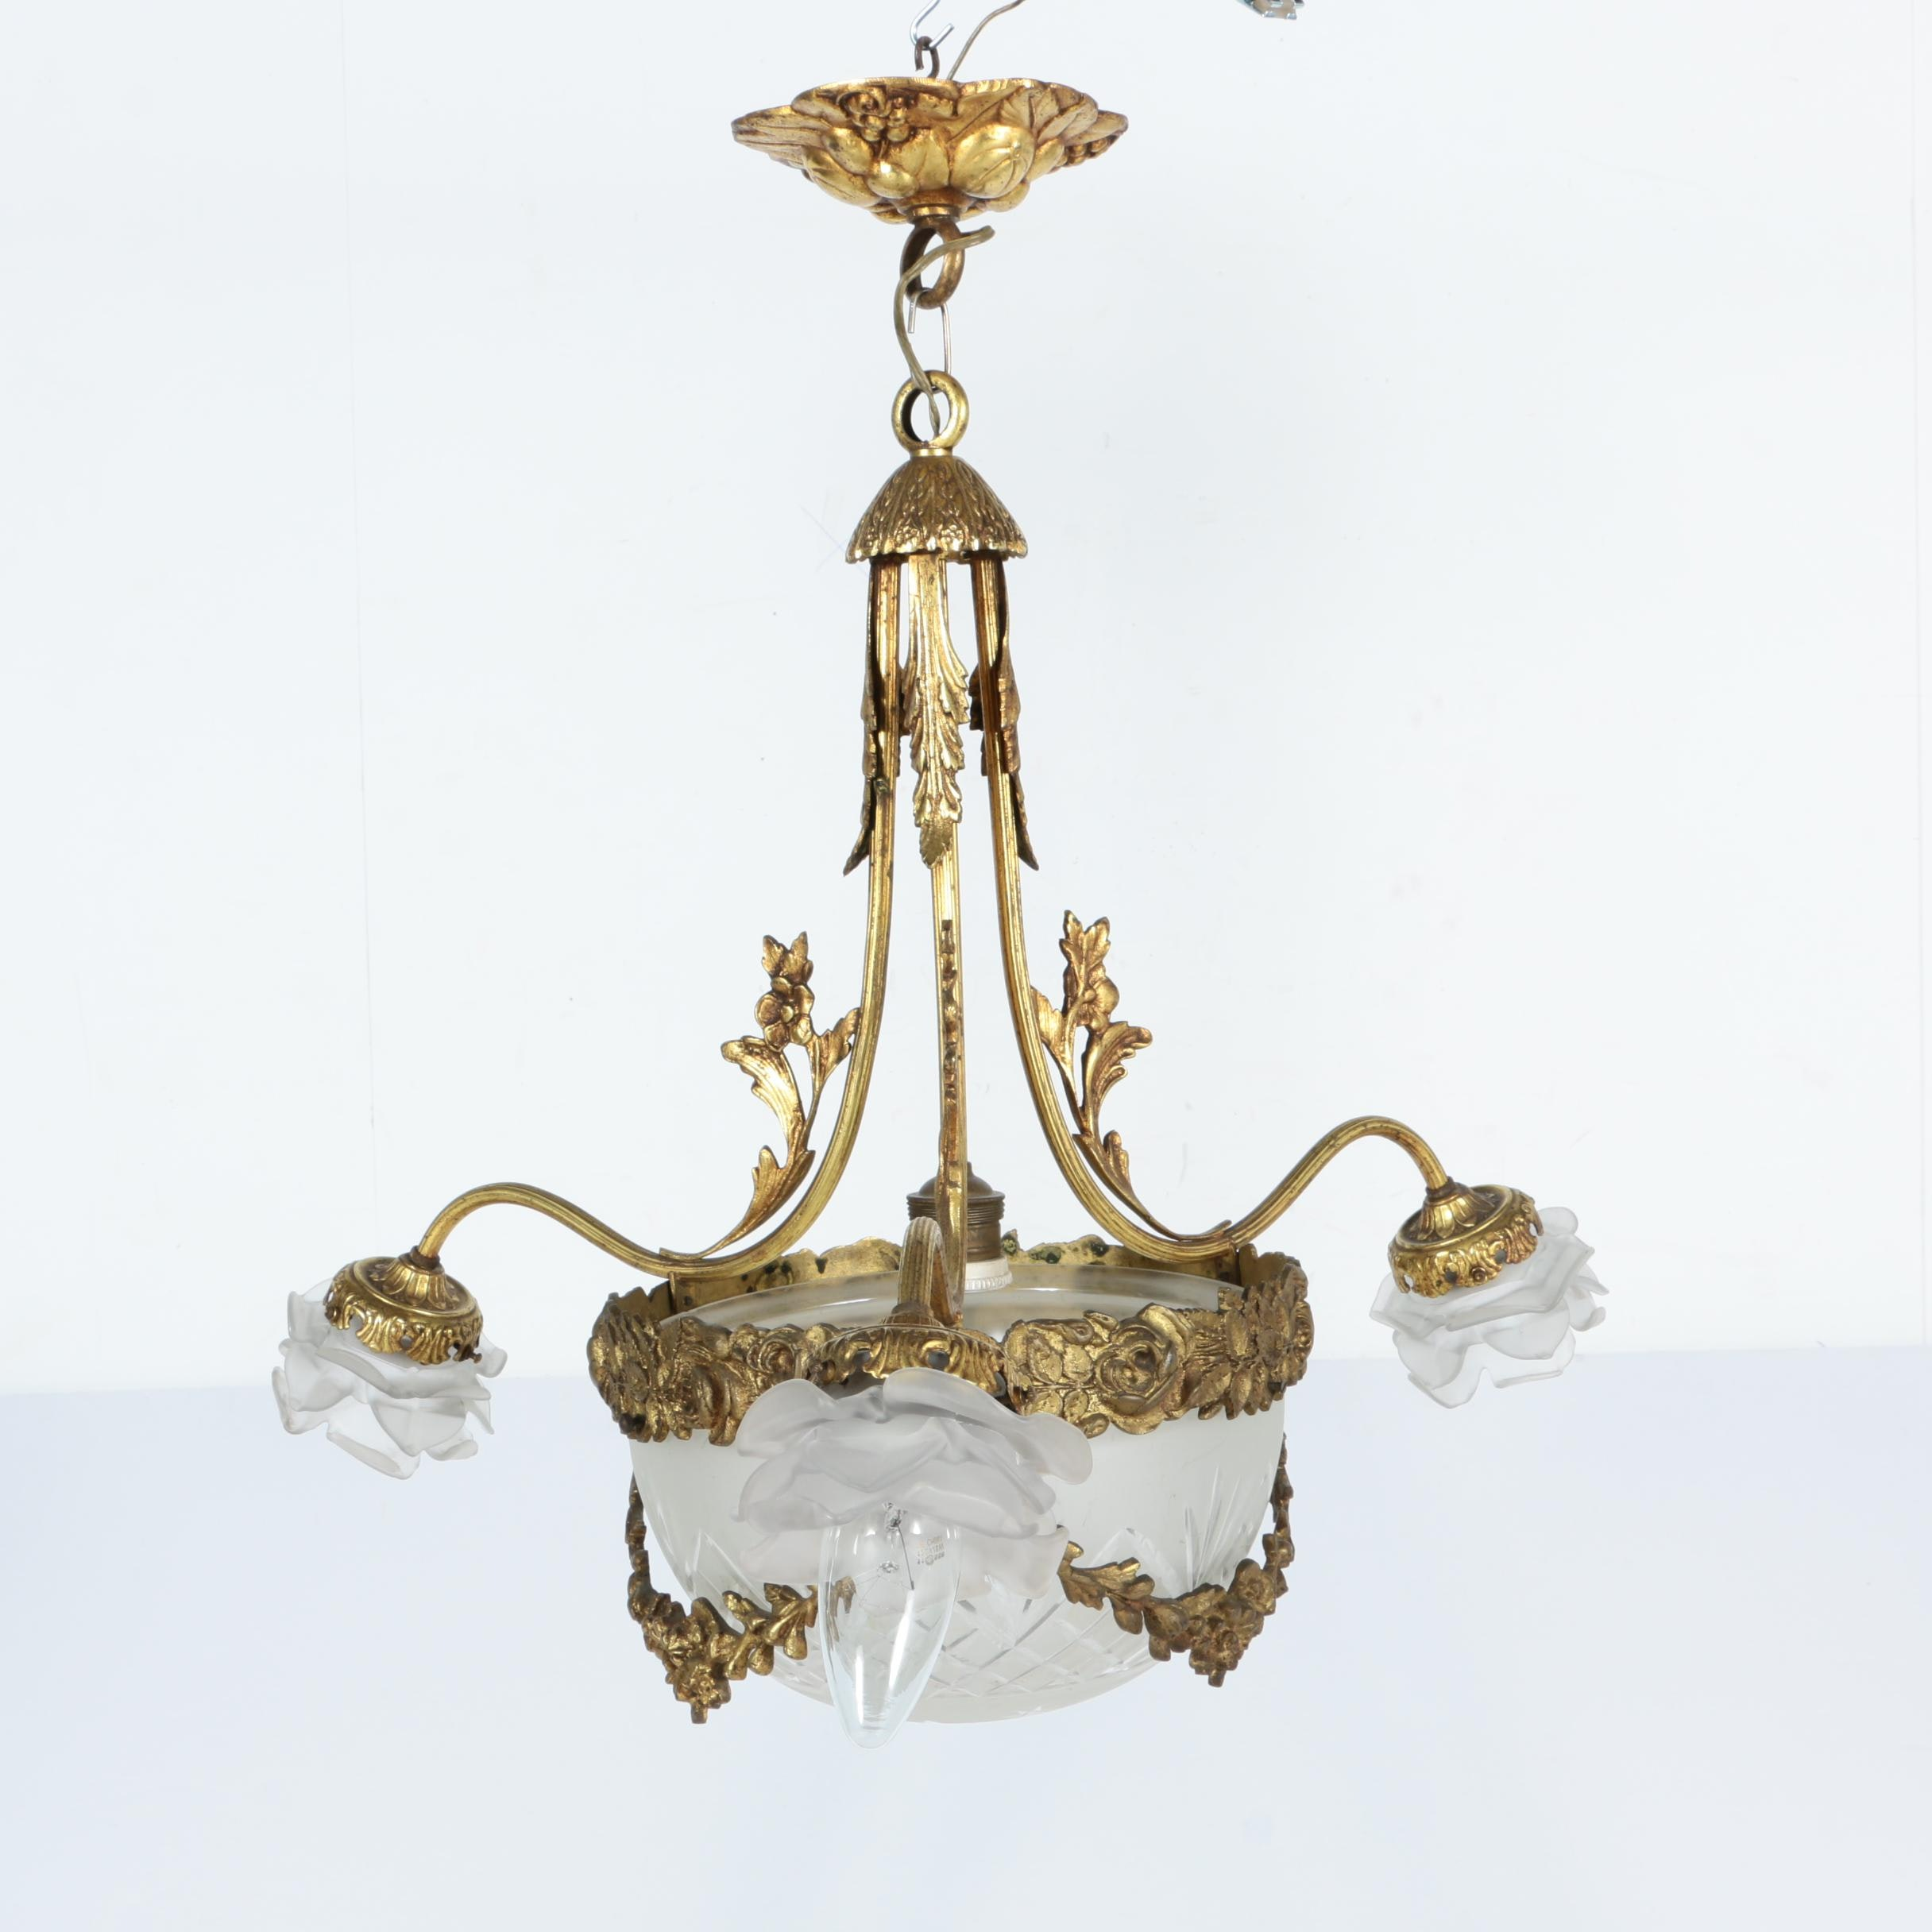 Vintage Gilt Metal and Frosted Glass Chandelier